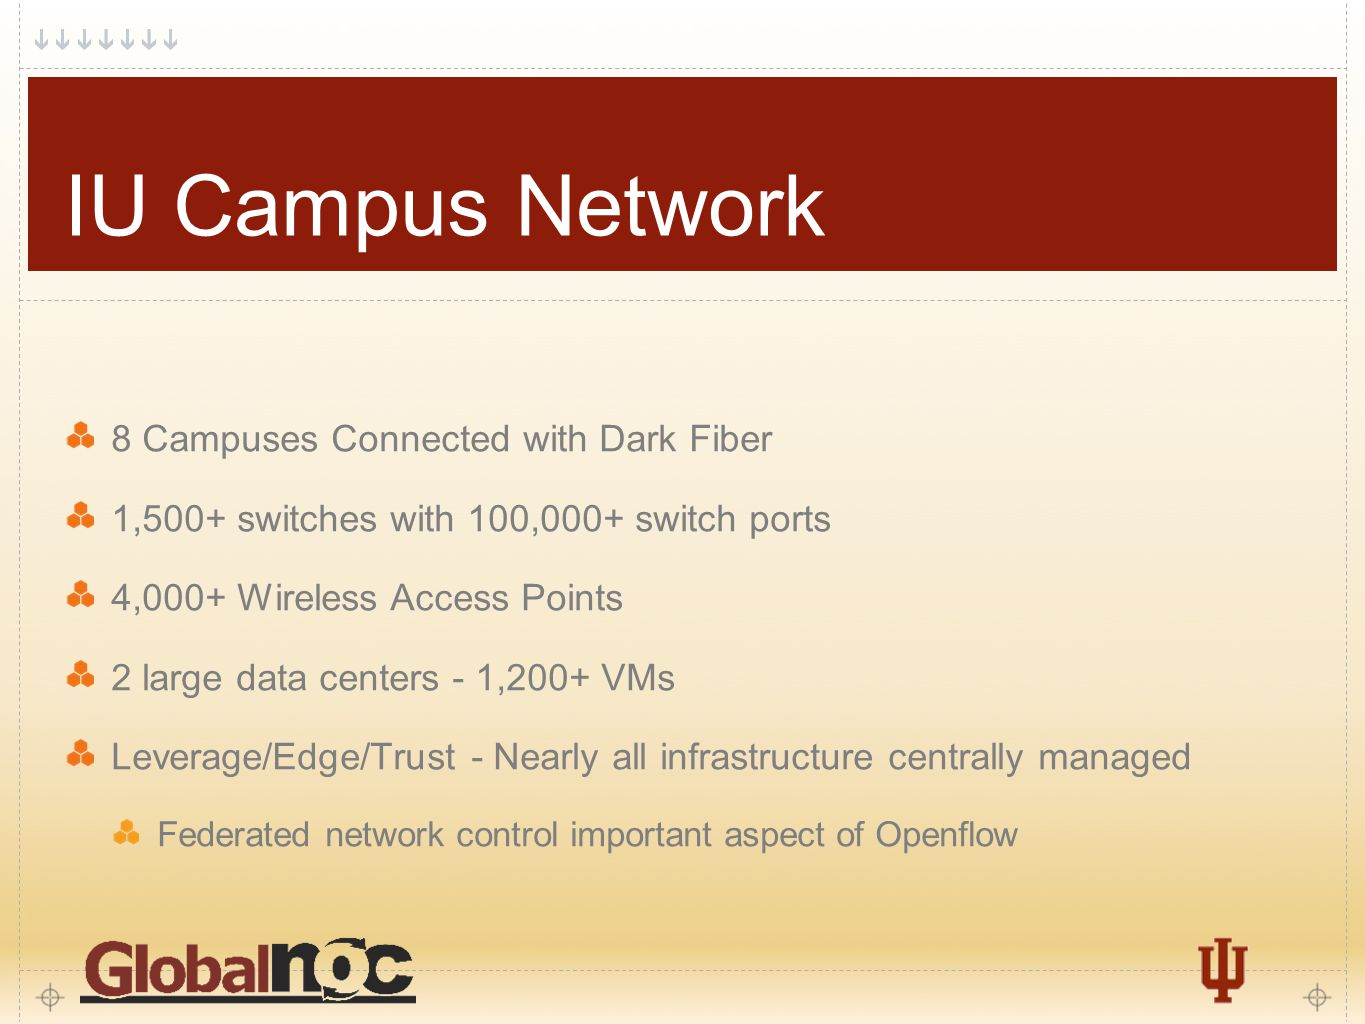 3 IU Campus Network 8 Campuses Connected with Dark Fiber 1,500+ switches with 100,000+ switch ports 4,000+ Wireless Access Points 2 large data centers - 1,200+ VMs Leverage/Edge/Trust - Nearly all infrastructure centrally managed Federated network control important aspect of Openflow